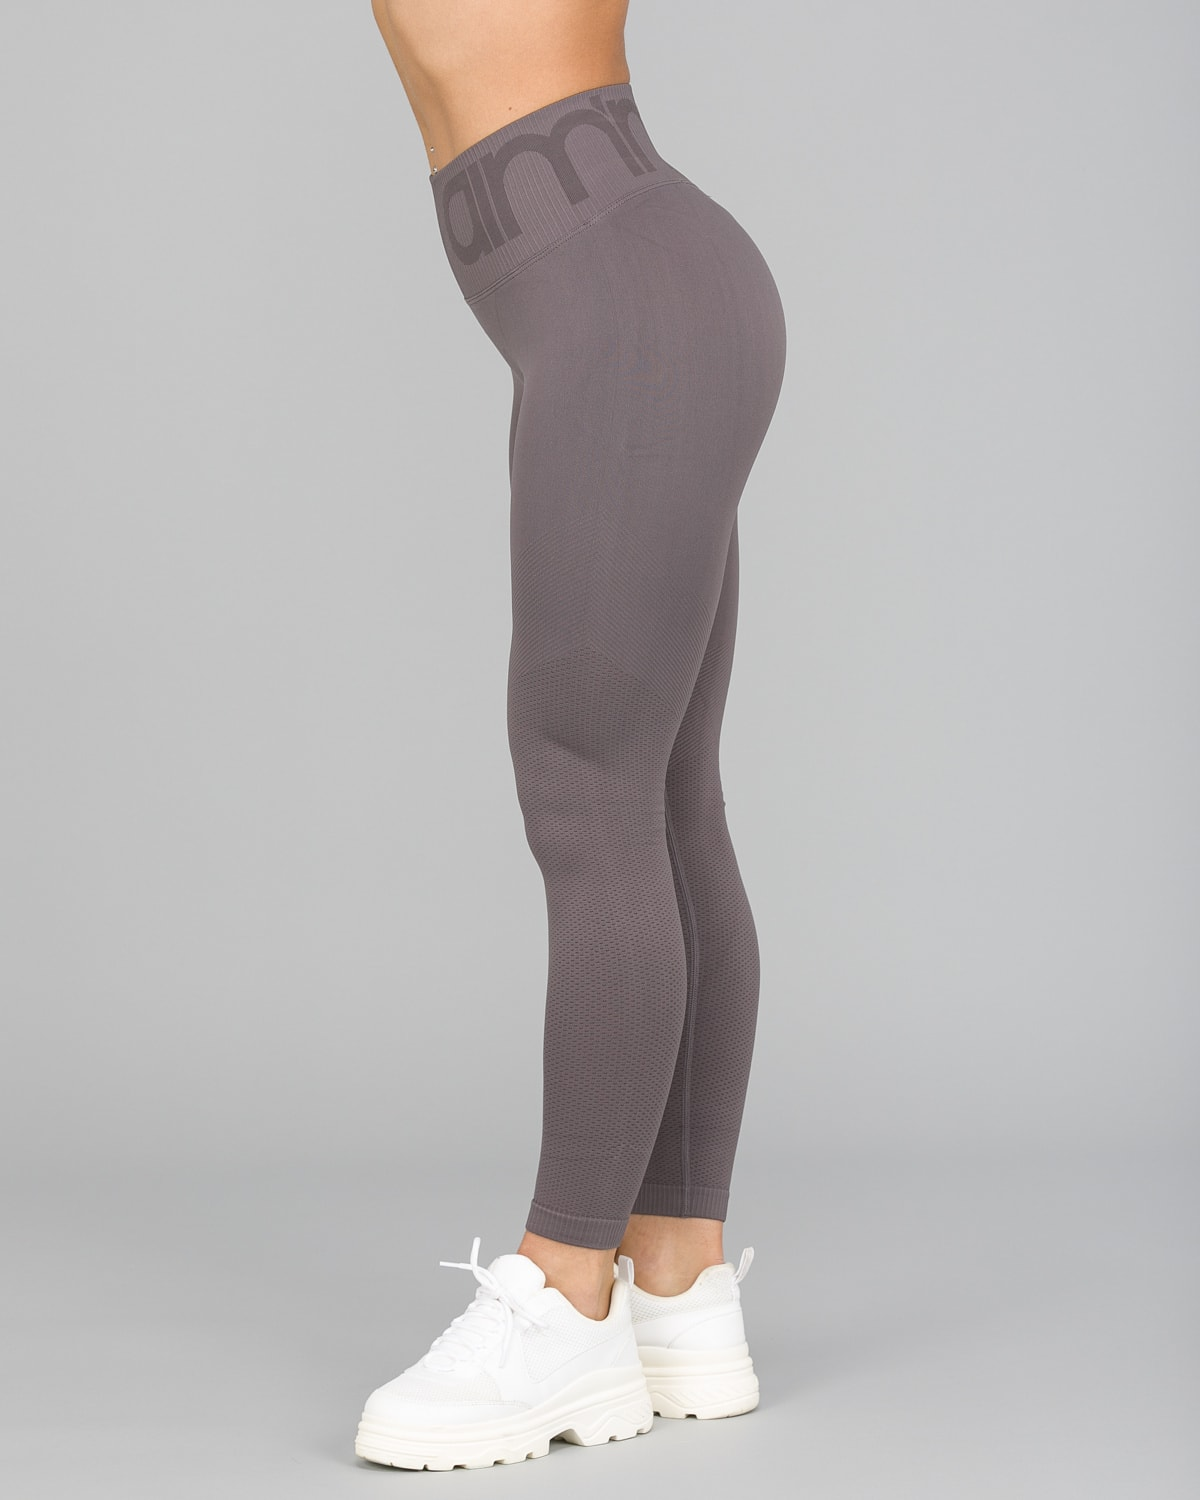 Aim'n Concrete Attention Seamless Tights7